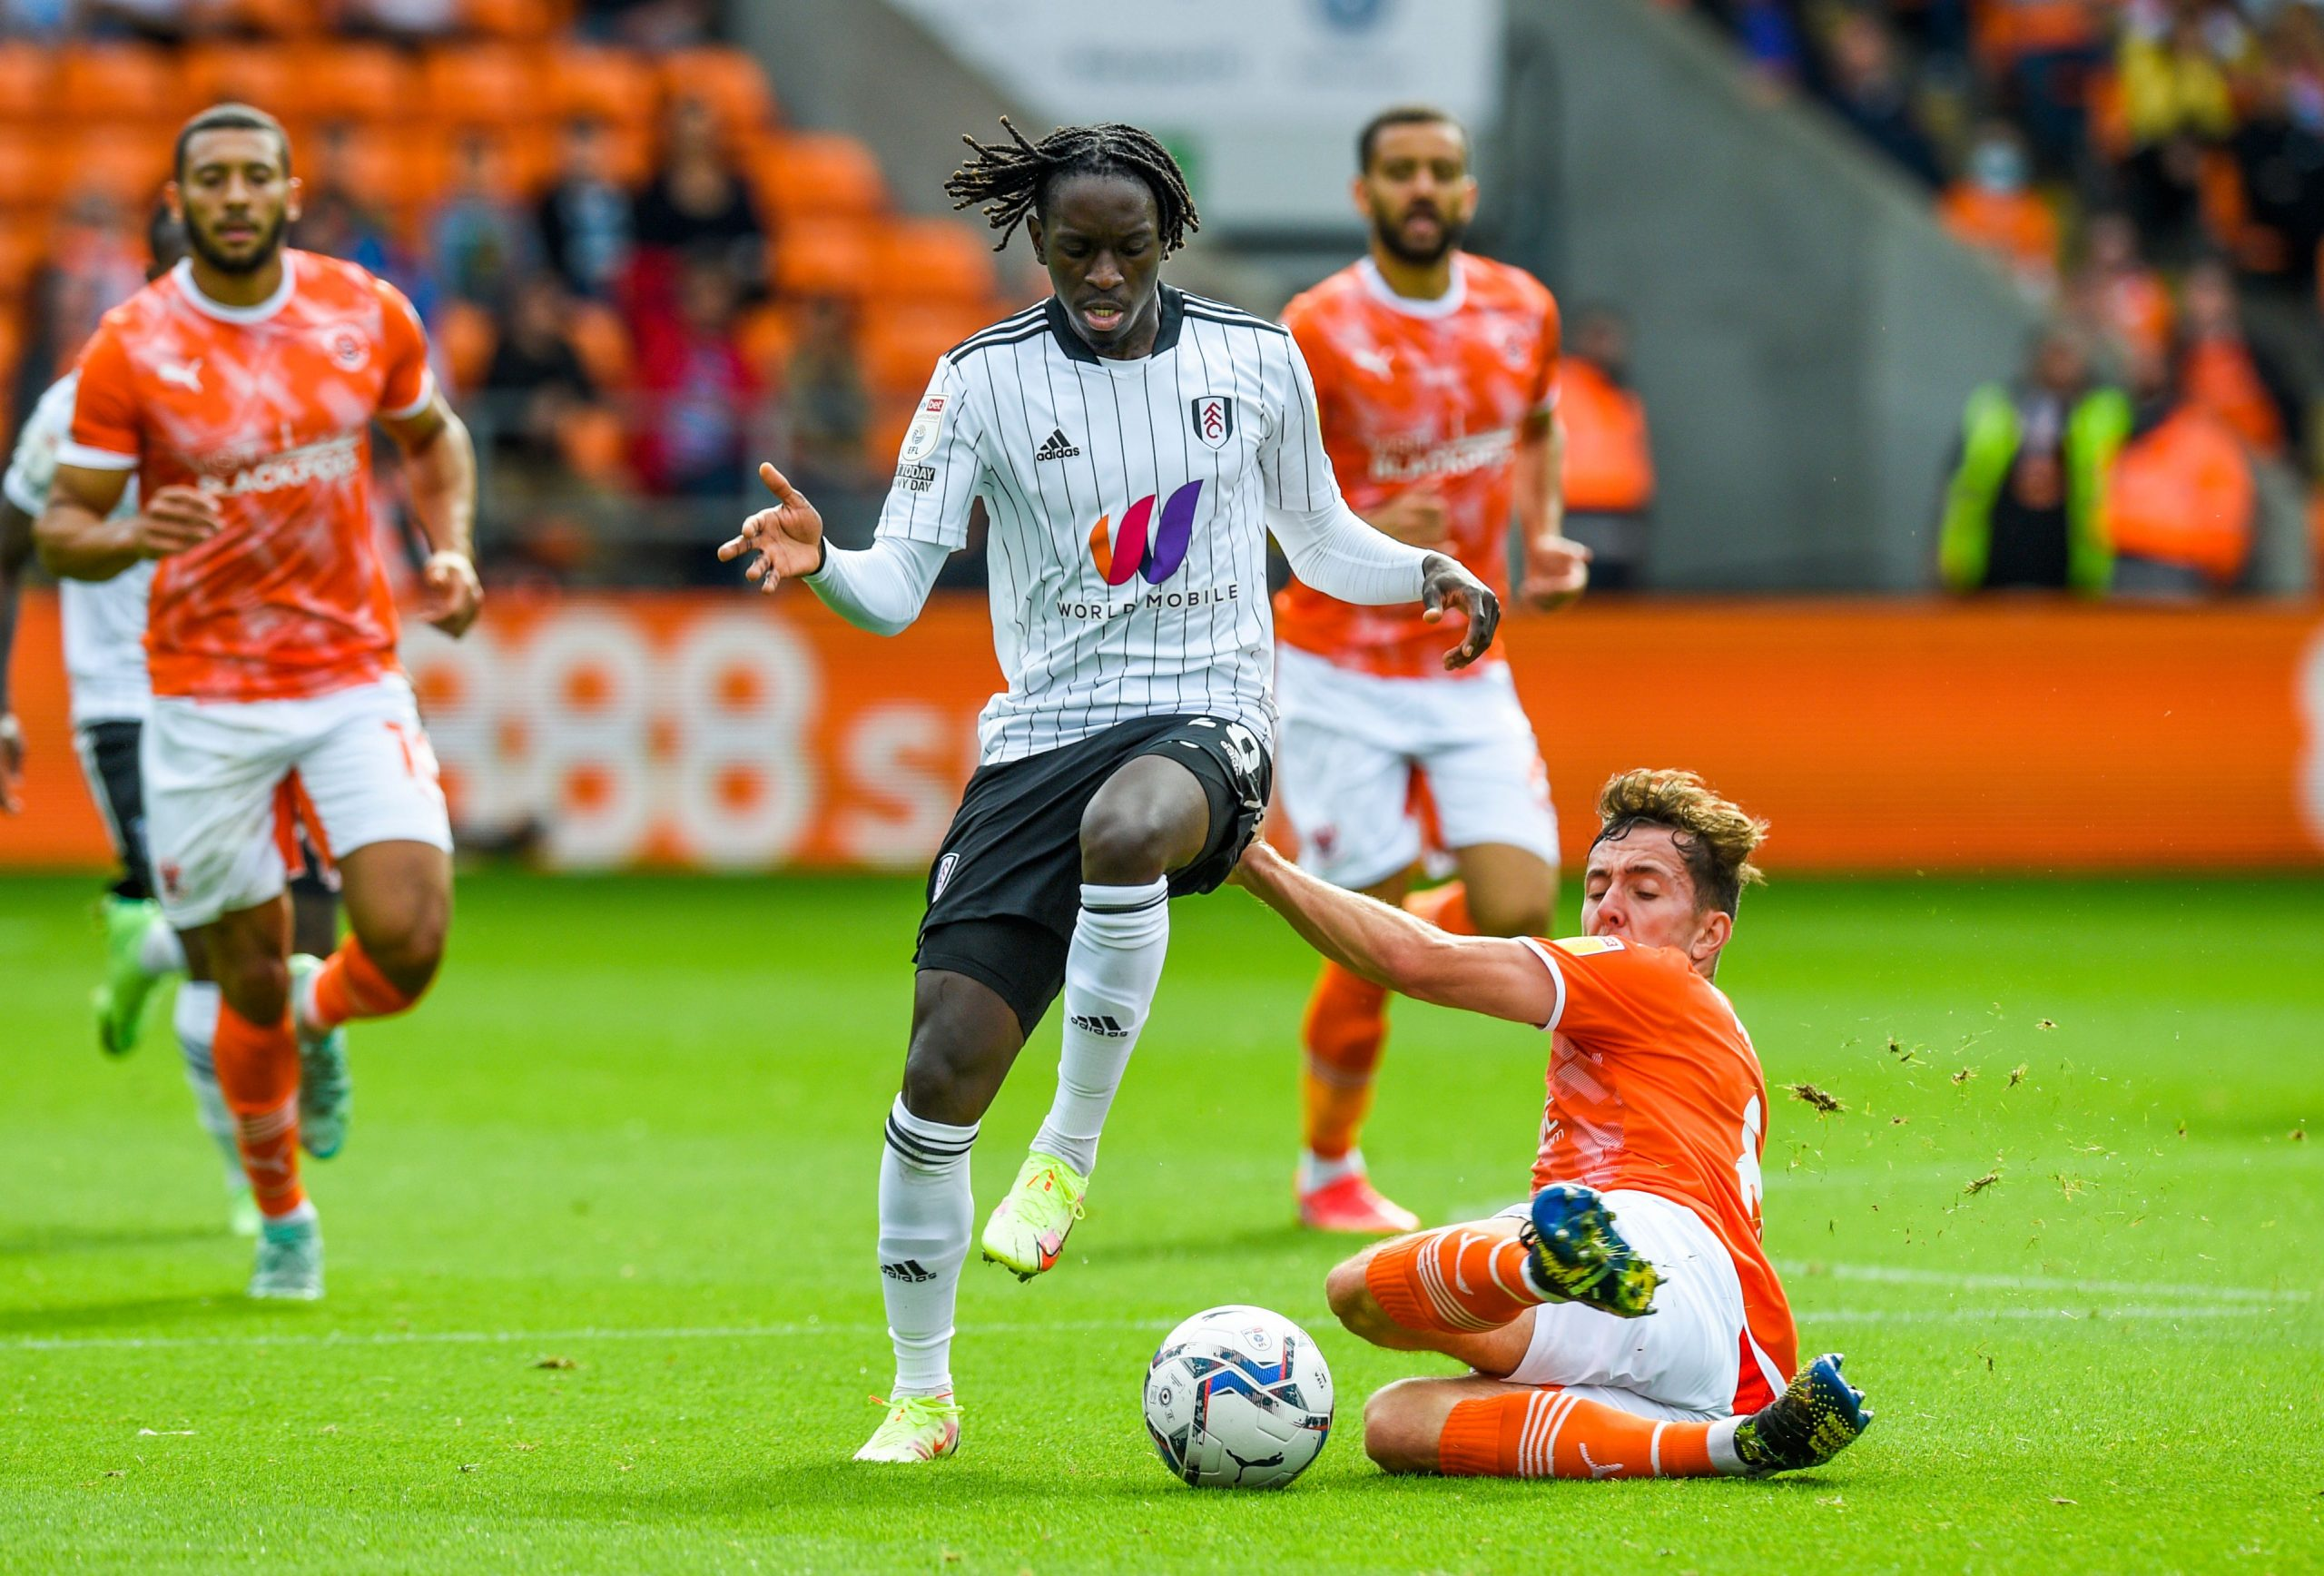 Azione di gioco Fulham - Blackpool (11 settembre 2021) - Photo by official account Twitter Fulham Football Club